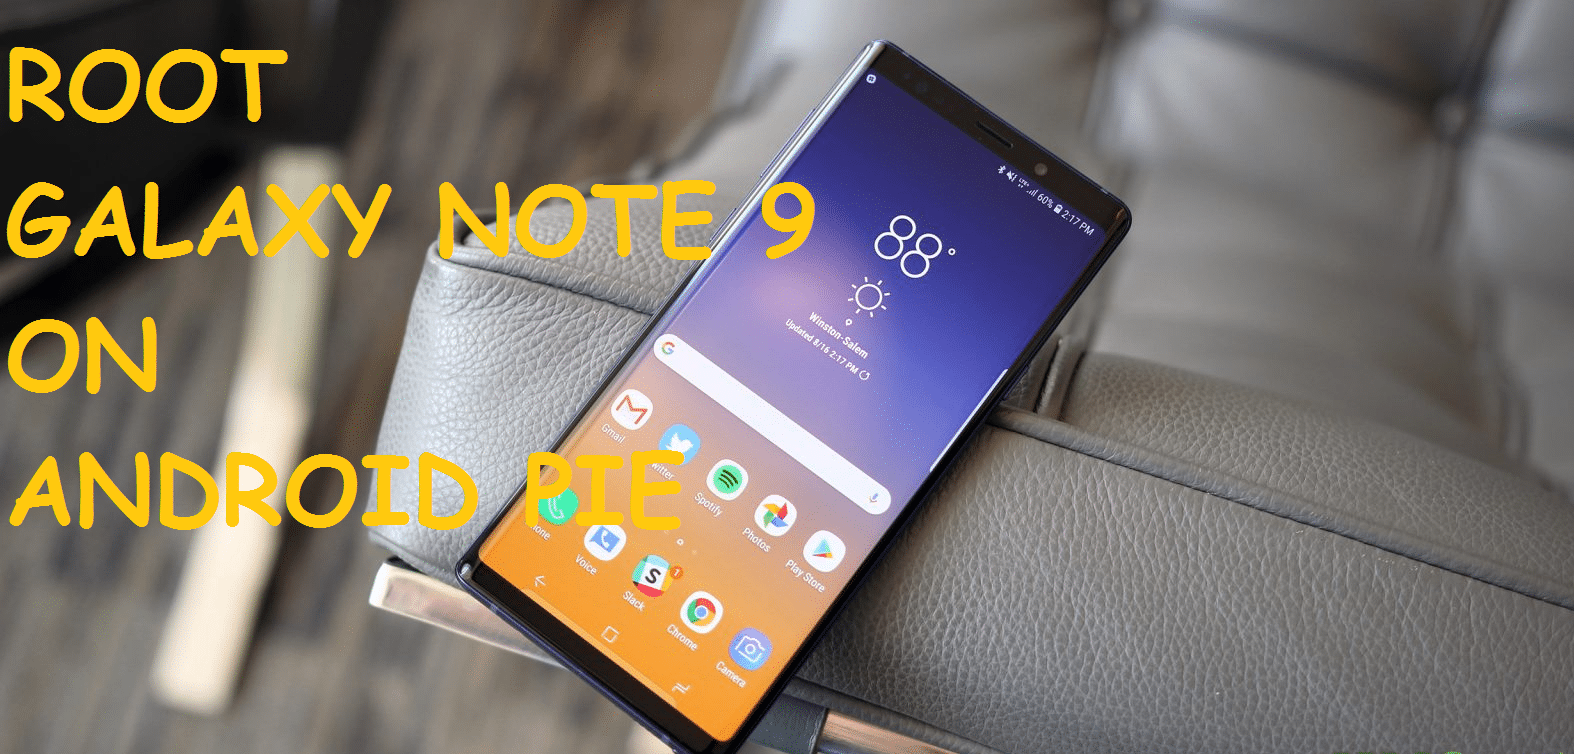 Root Galaxy Note 9 On Android Pie 9.0 Firmware